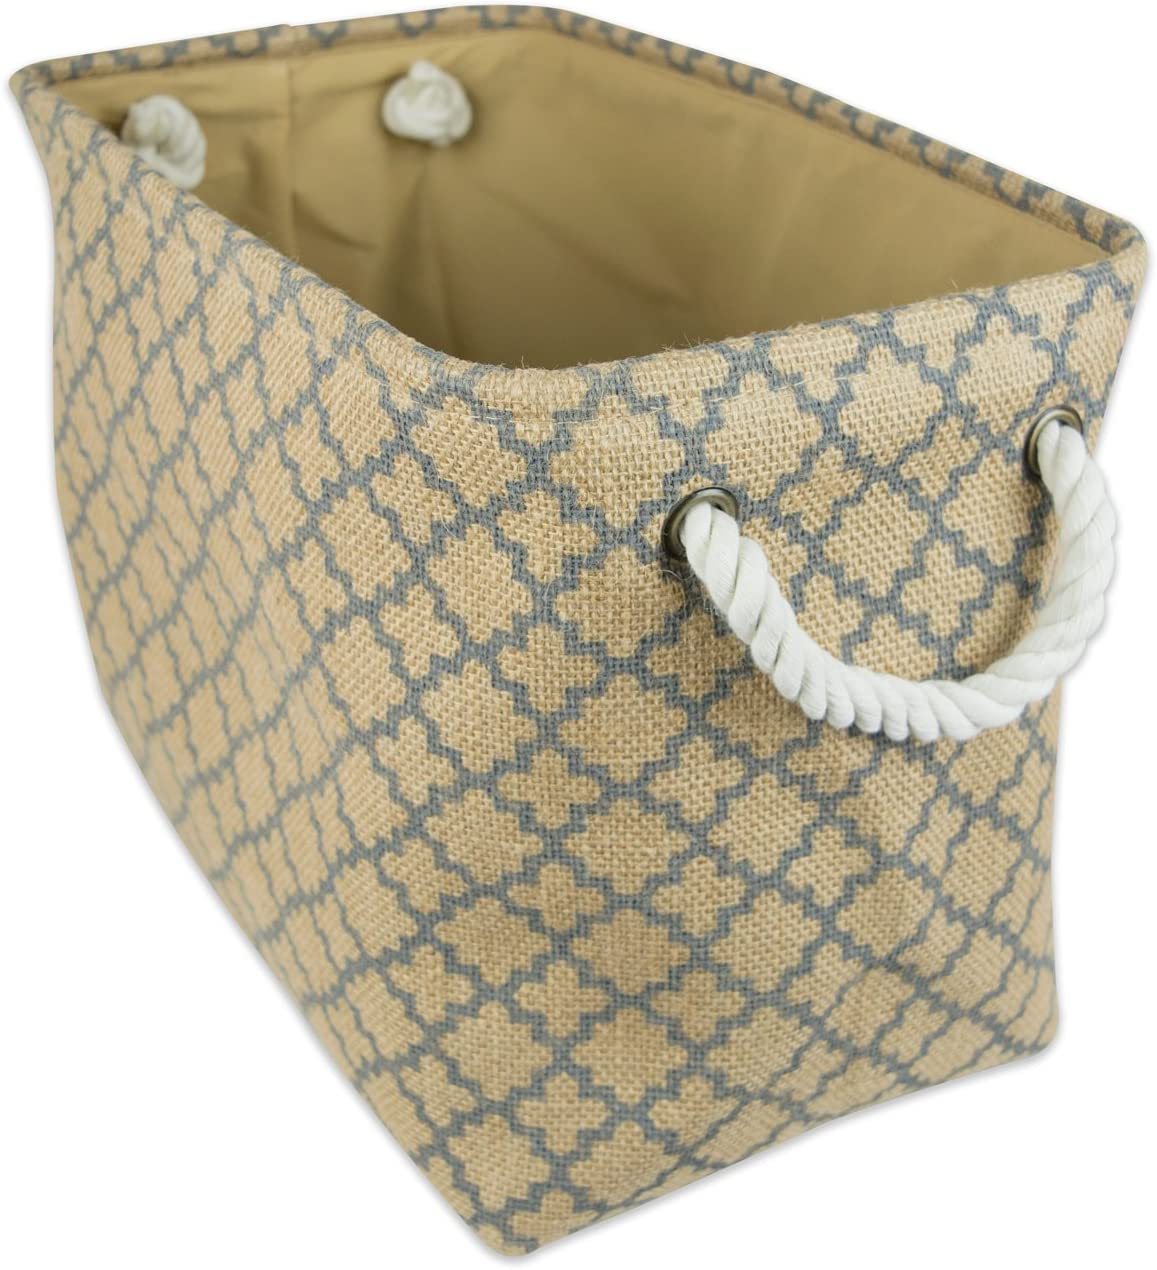 "DII Collapsible Burlap Storage Basket or Bin with Durable Cotton Handles, Home Organizational Solution for Office, Bedroom, Closet, Toys, & Laundry (Medium –12x10x16""), Gray LatticeOutline"